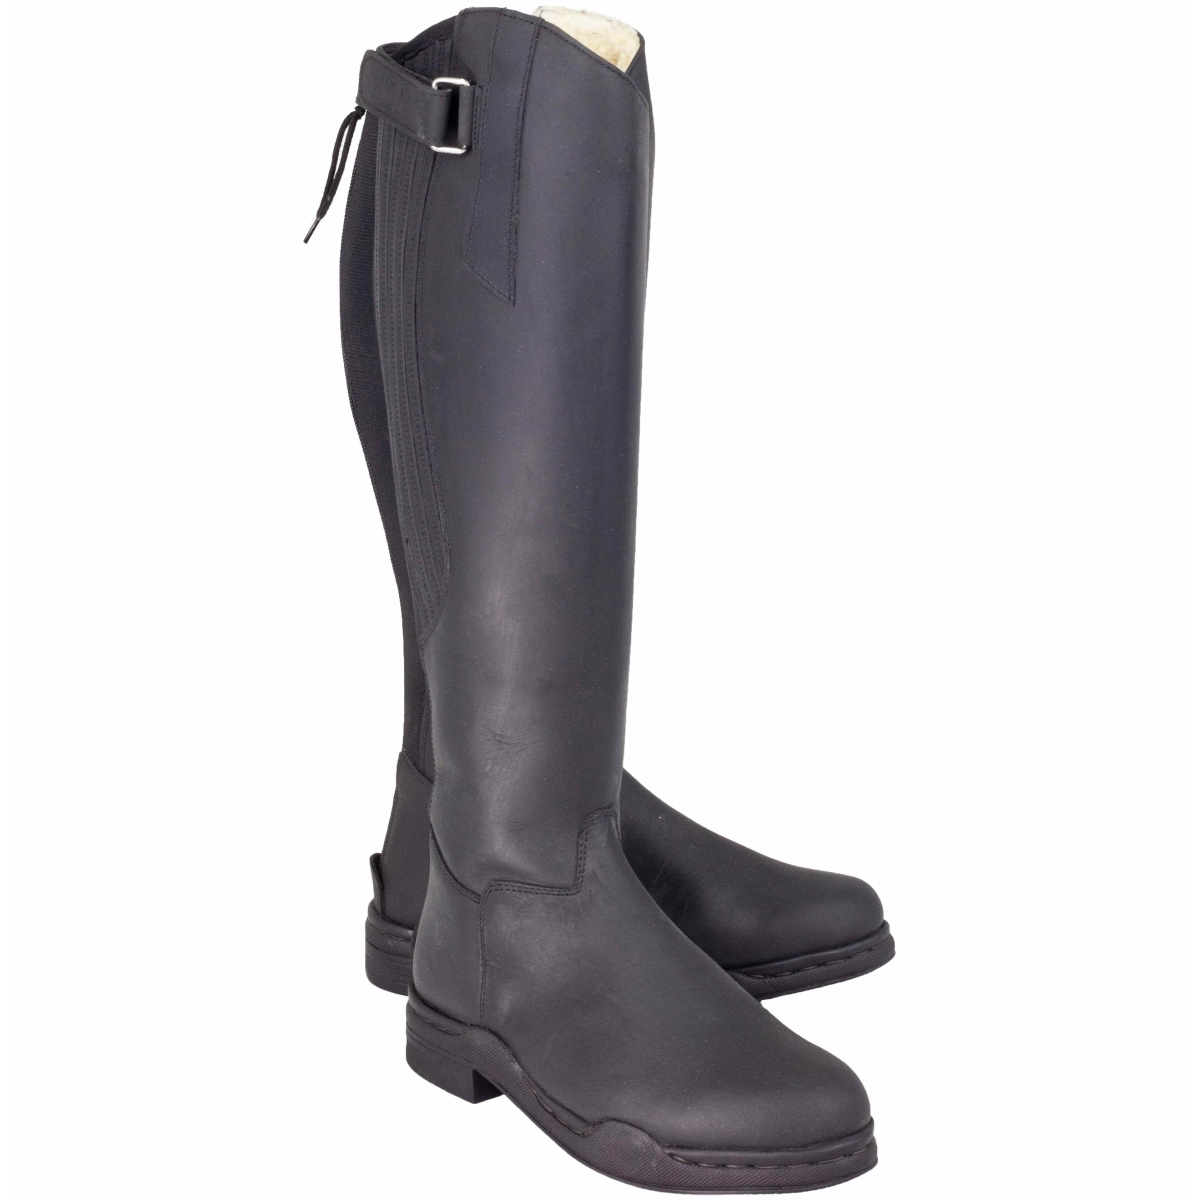 Damen Thermostiefel SIBERIA HKM by Reiterladen24 dunkelbraun 45